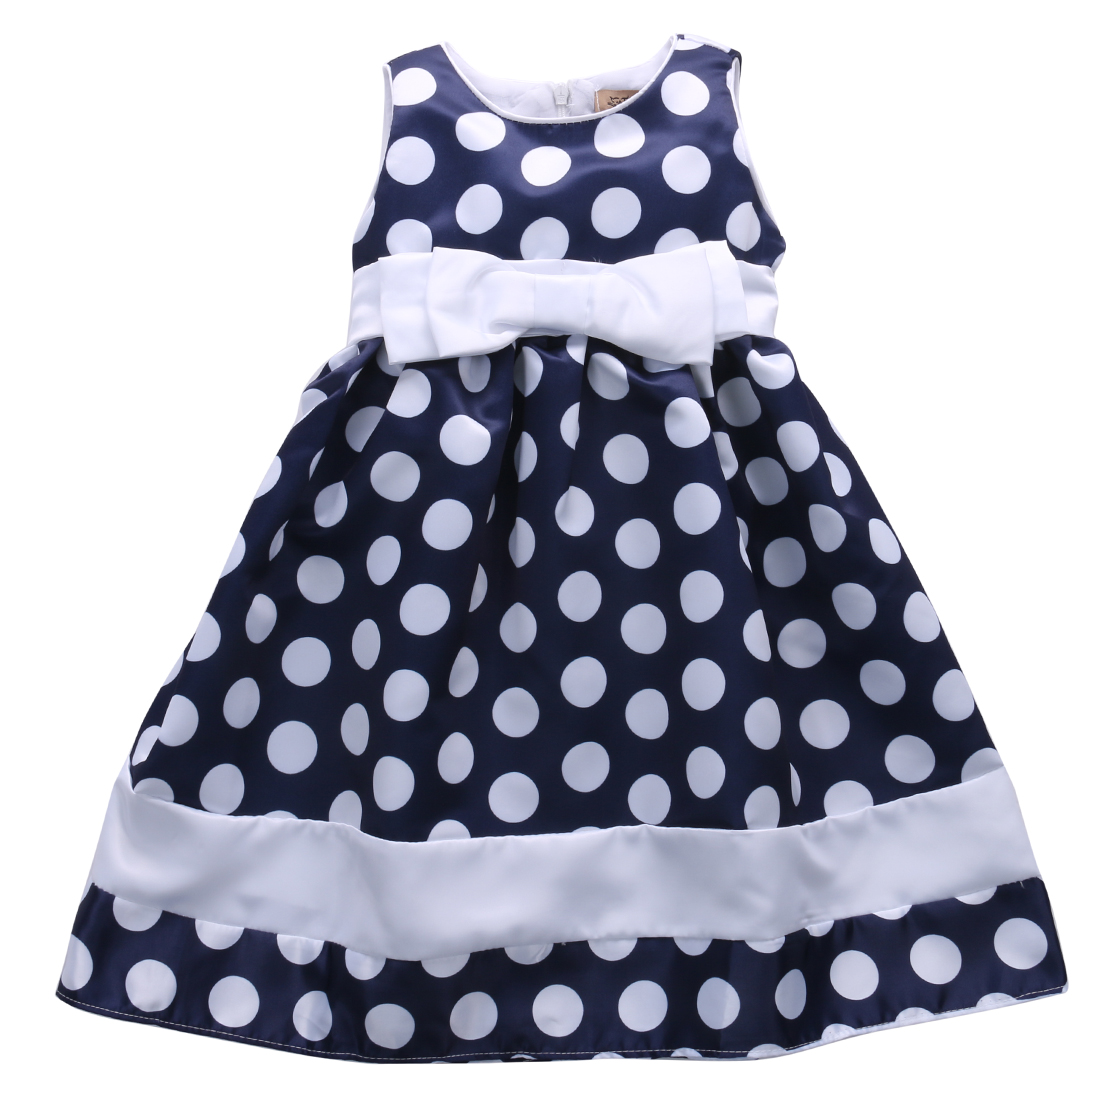 Helen115 Lovely Baby Kid Girls Princess Polka Dot Printed With Bow-knot Sleeveless Dresses 4-9Years